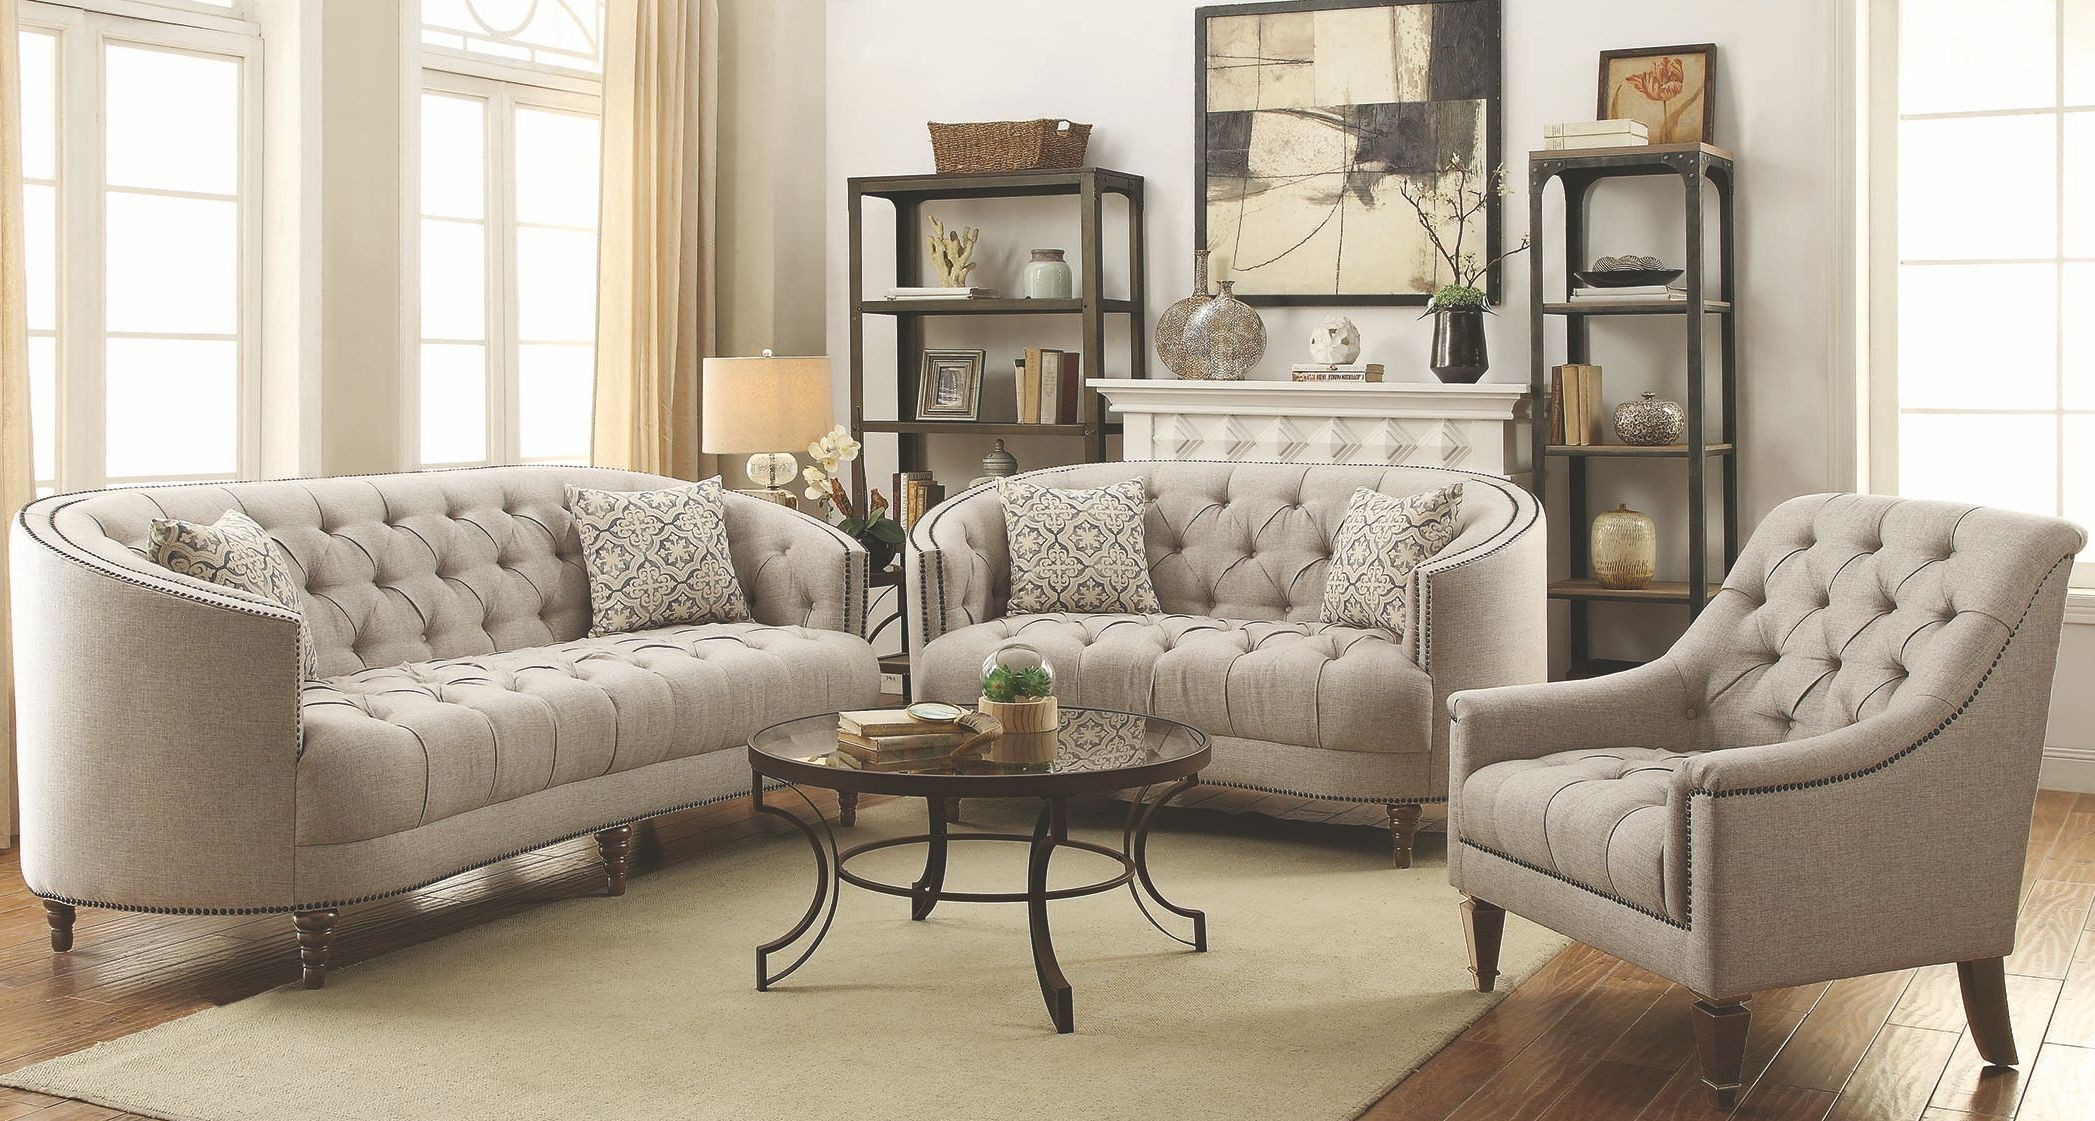 Living Room Set For Sale By Owner